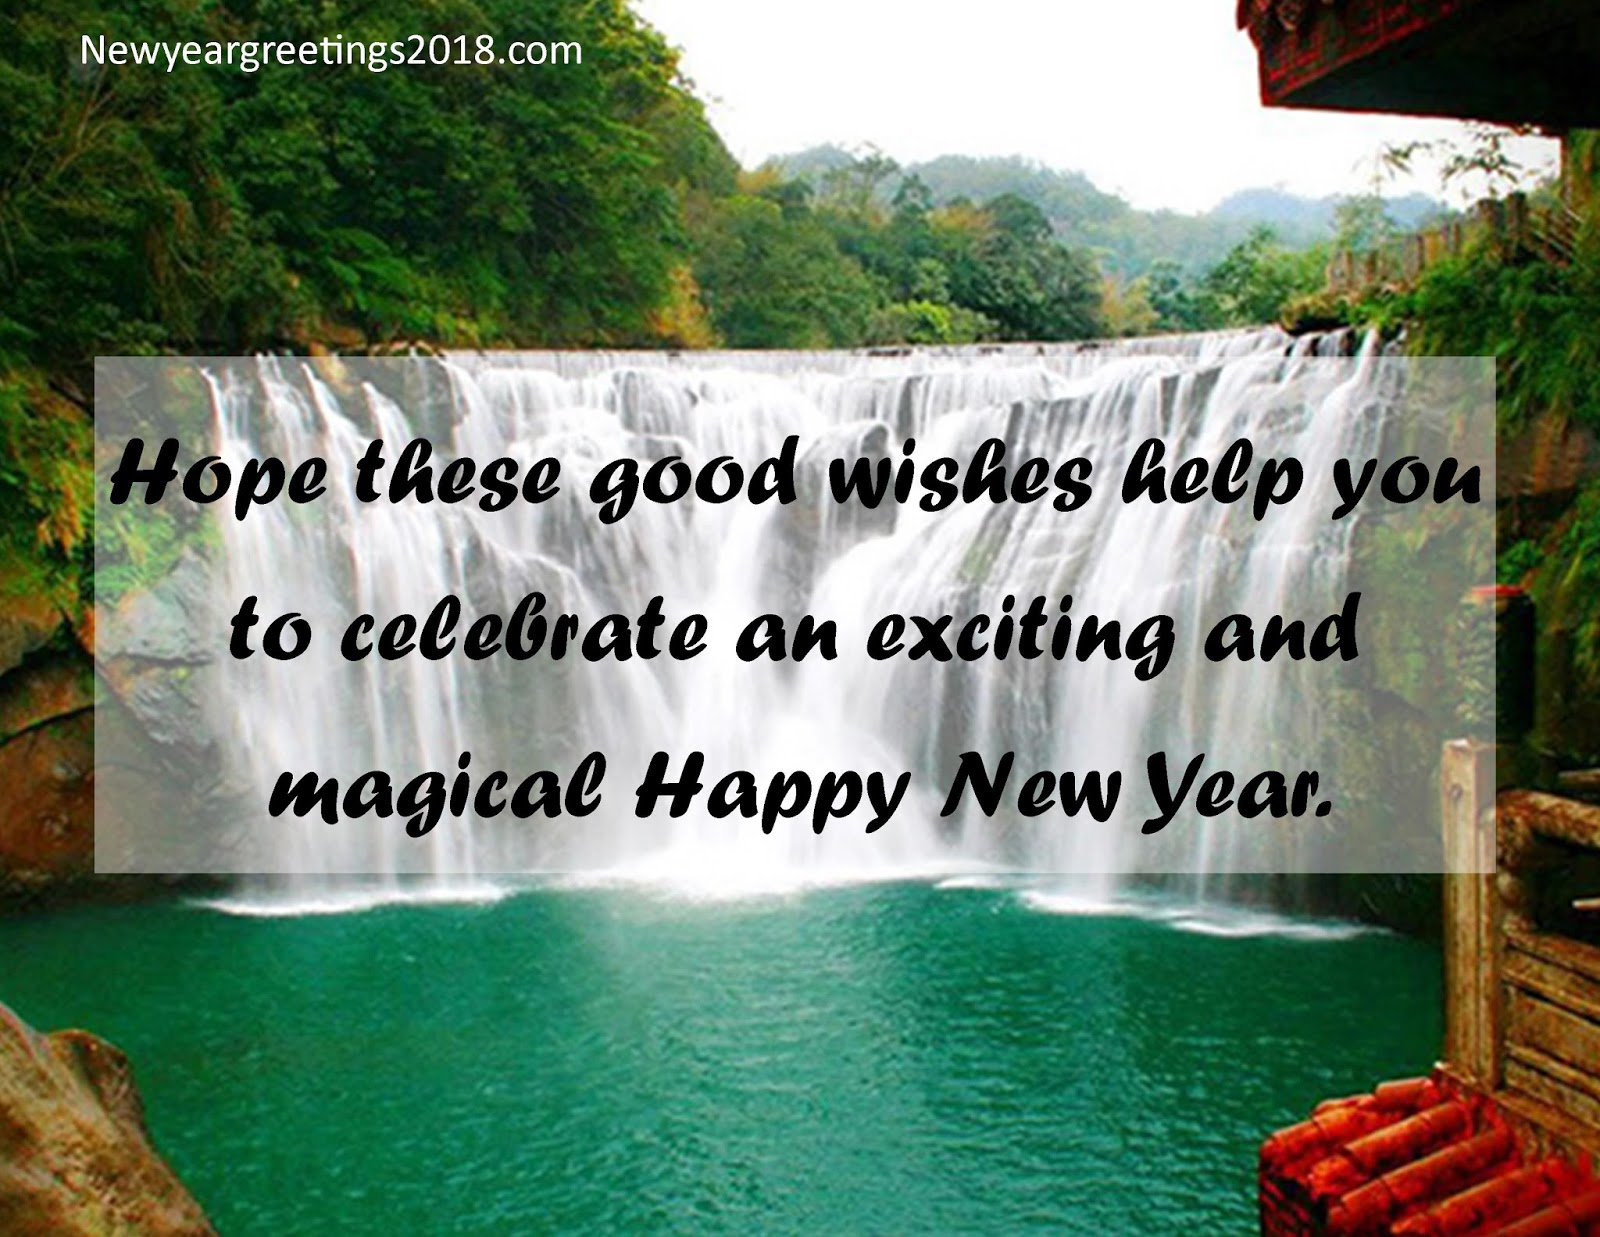 Happy New Year 2018 Wishing QUotes